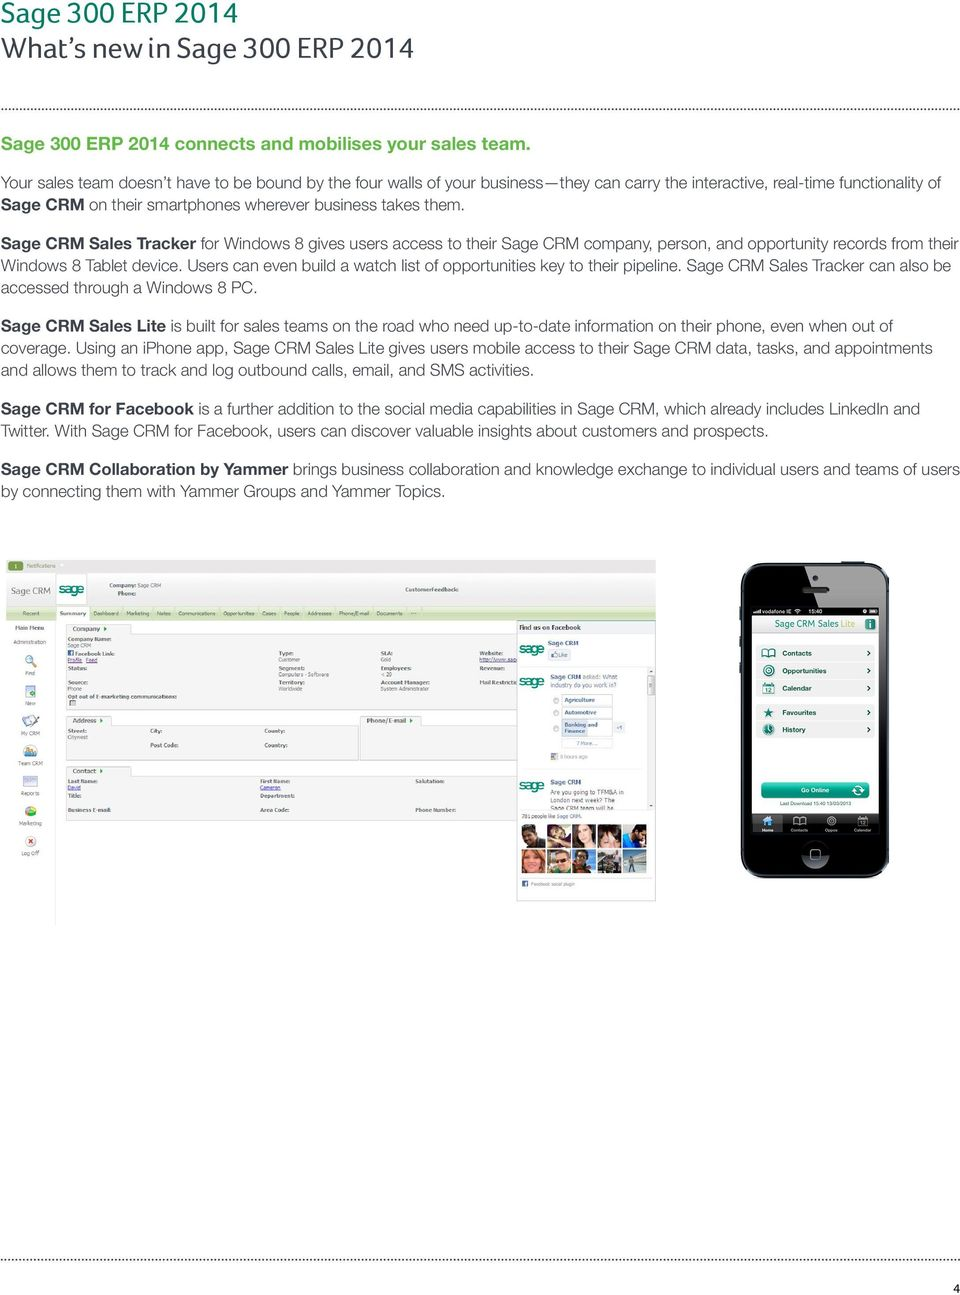 Sage CRM Sales Tracker for Windows 8 gives users access to their Sage CRM company, person, and opportunity records from their Windows 8 Tablet device.